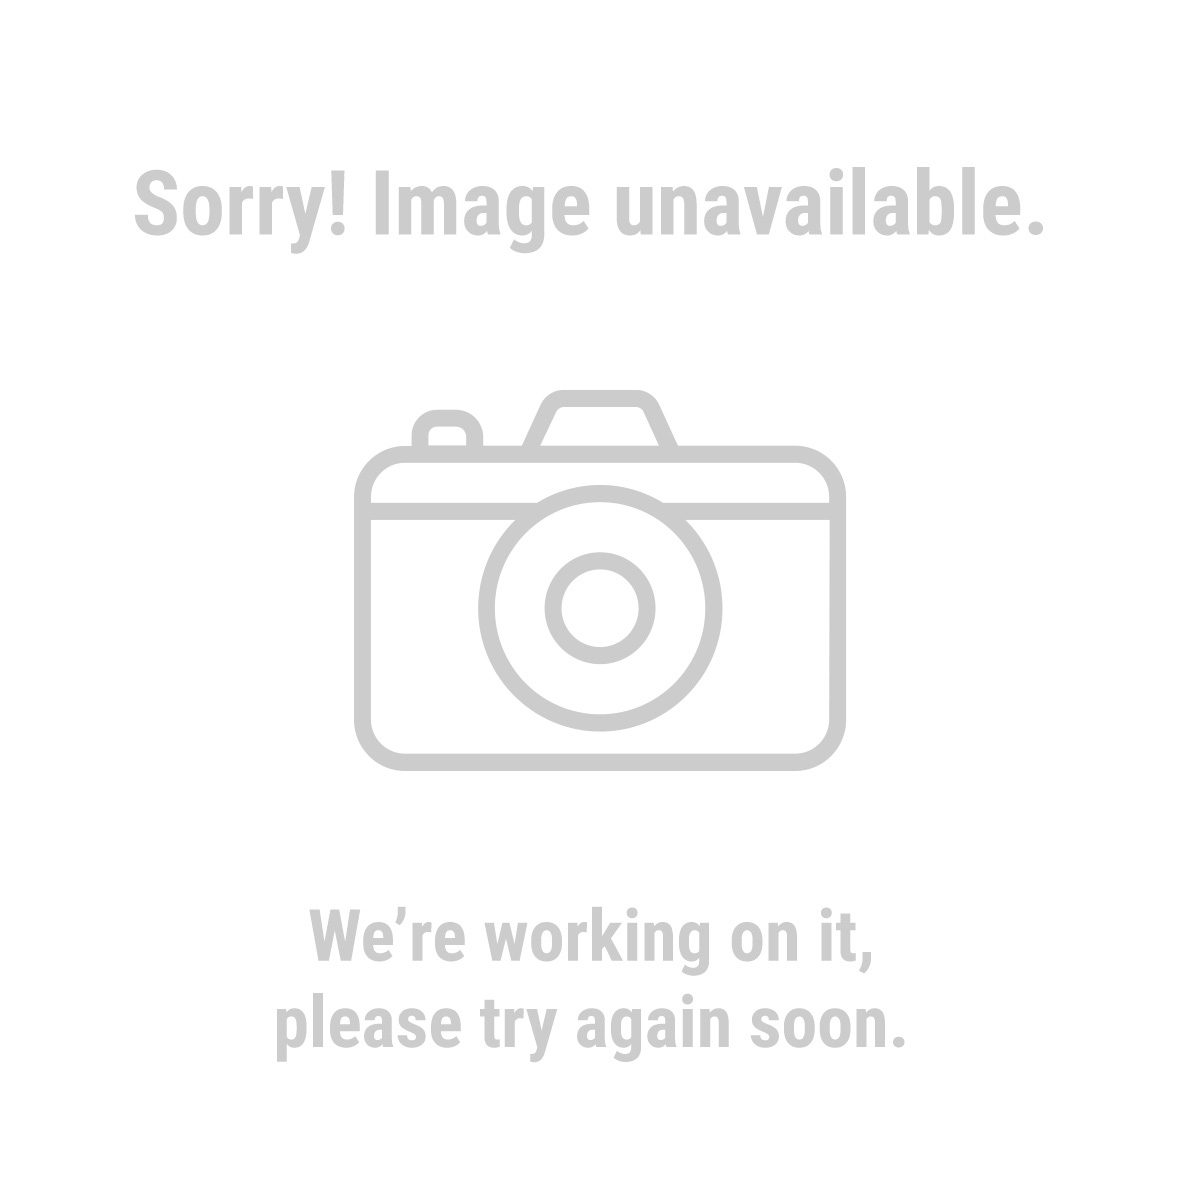 Central Machinery 95964 5.5 HP Chipper Shredder